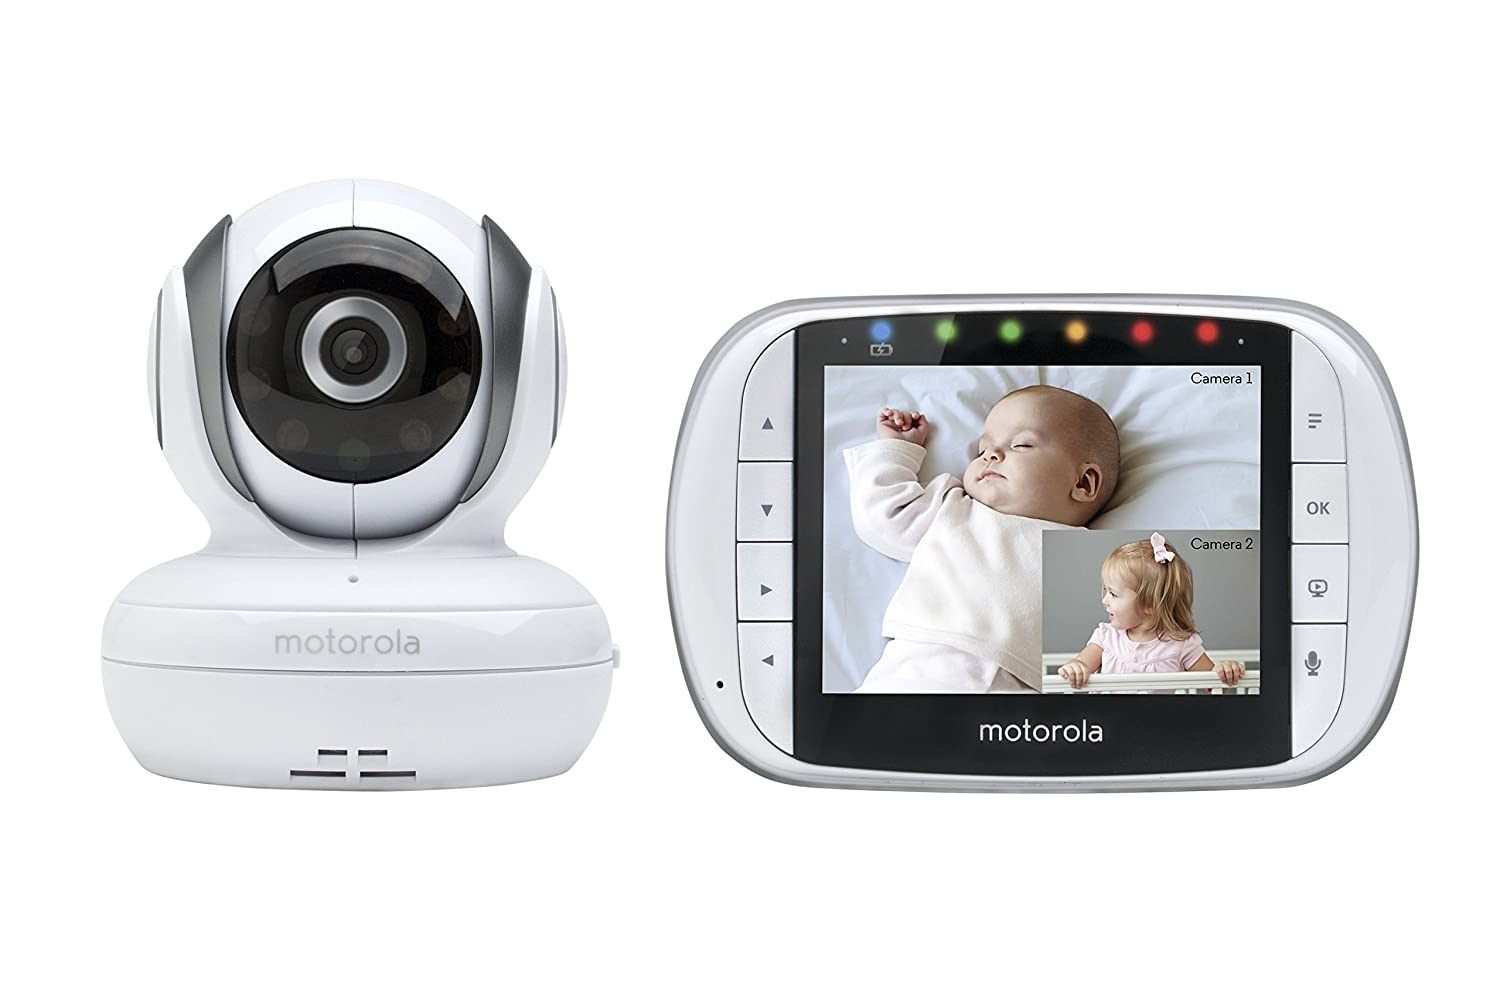 Motorola Video Baby Monitor with 2 Cameras, 3.5 Inch LCD Screen 36S-2